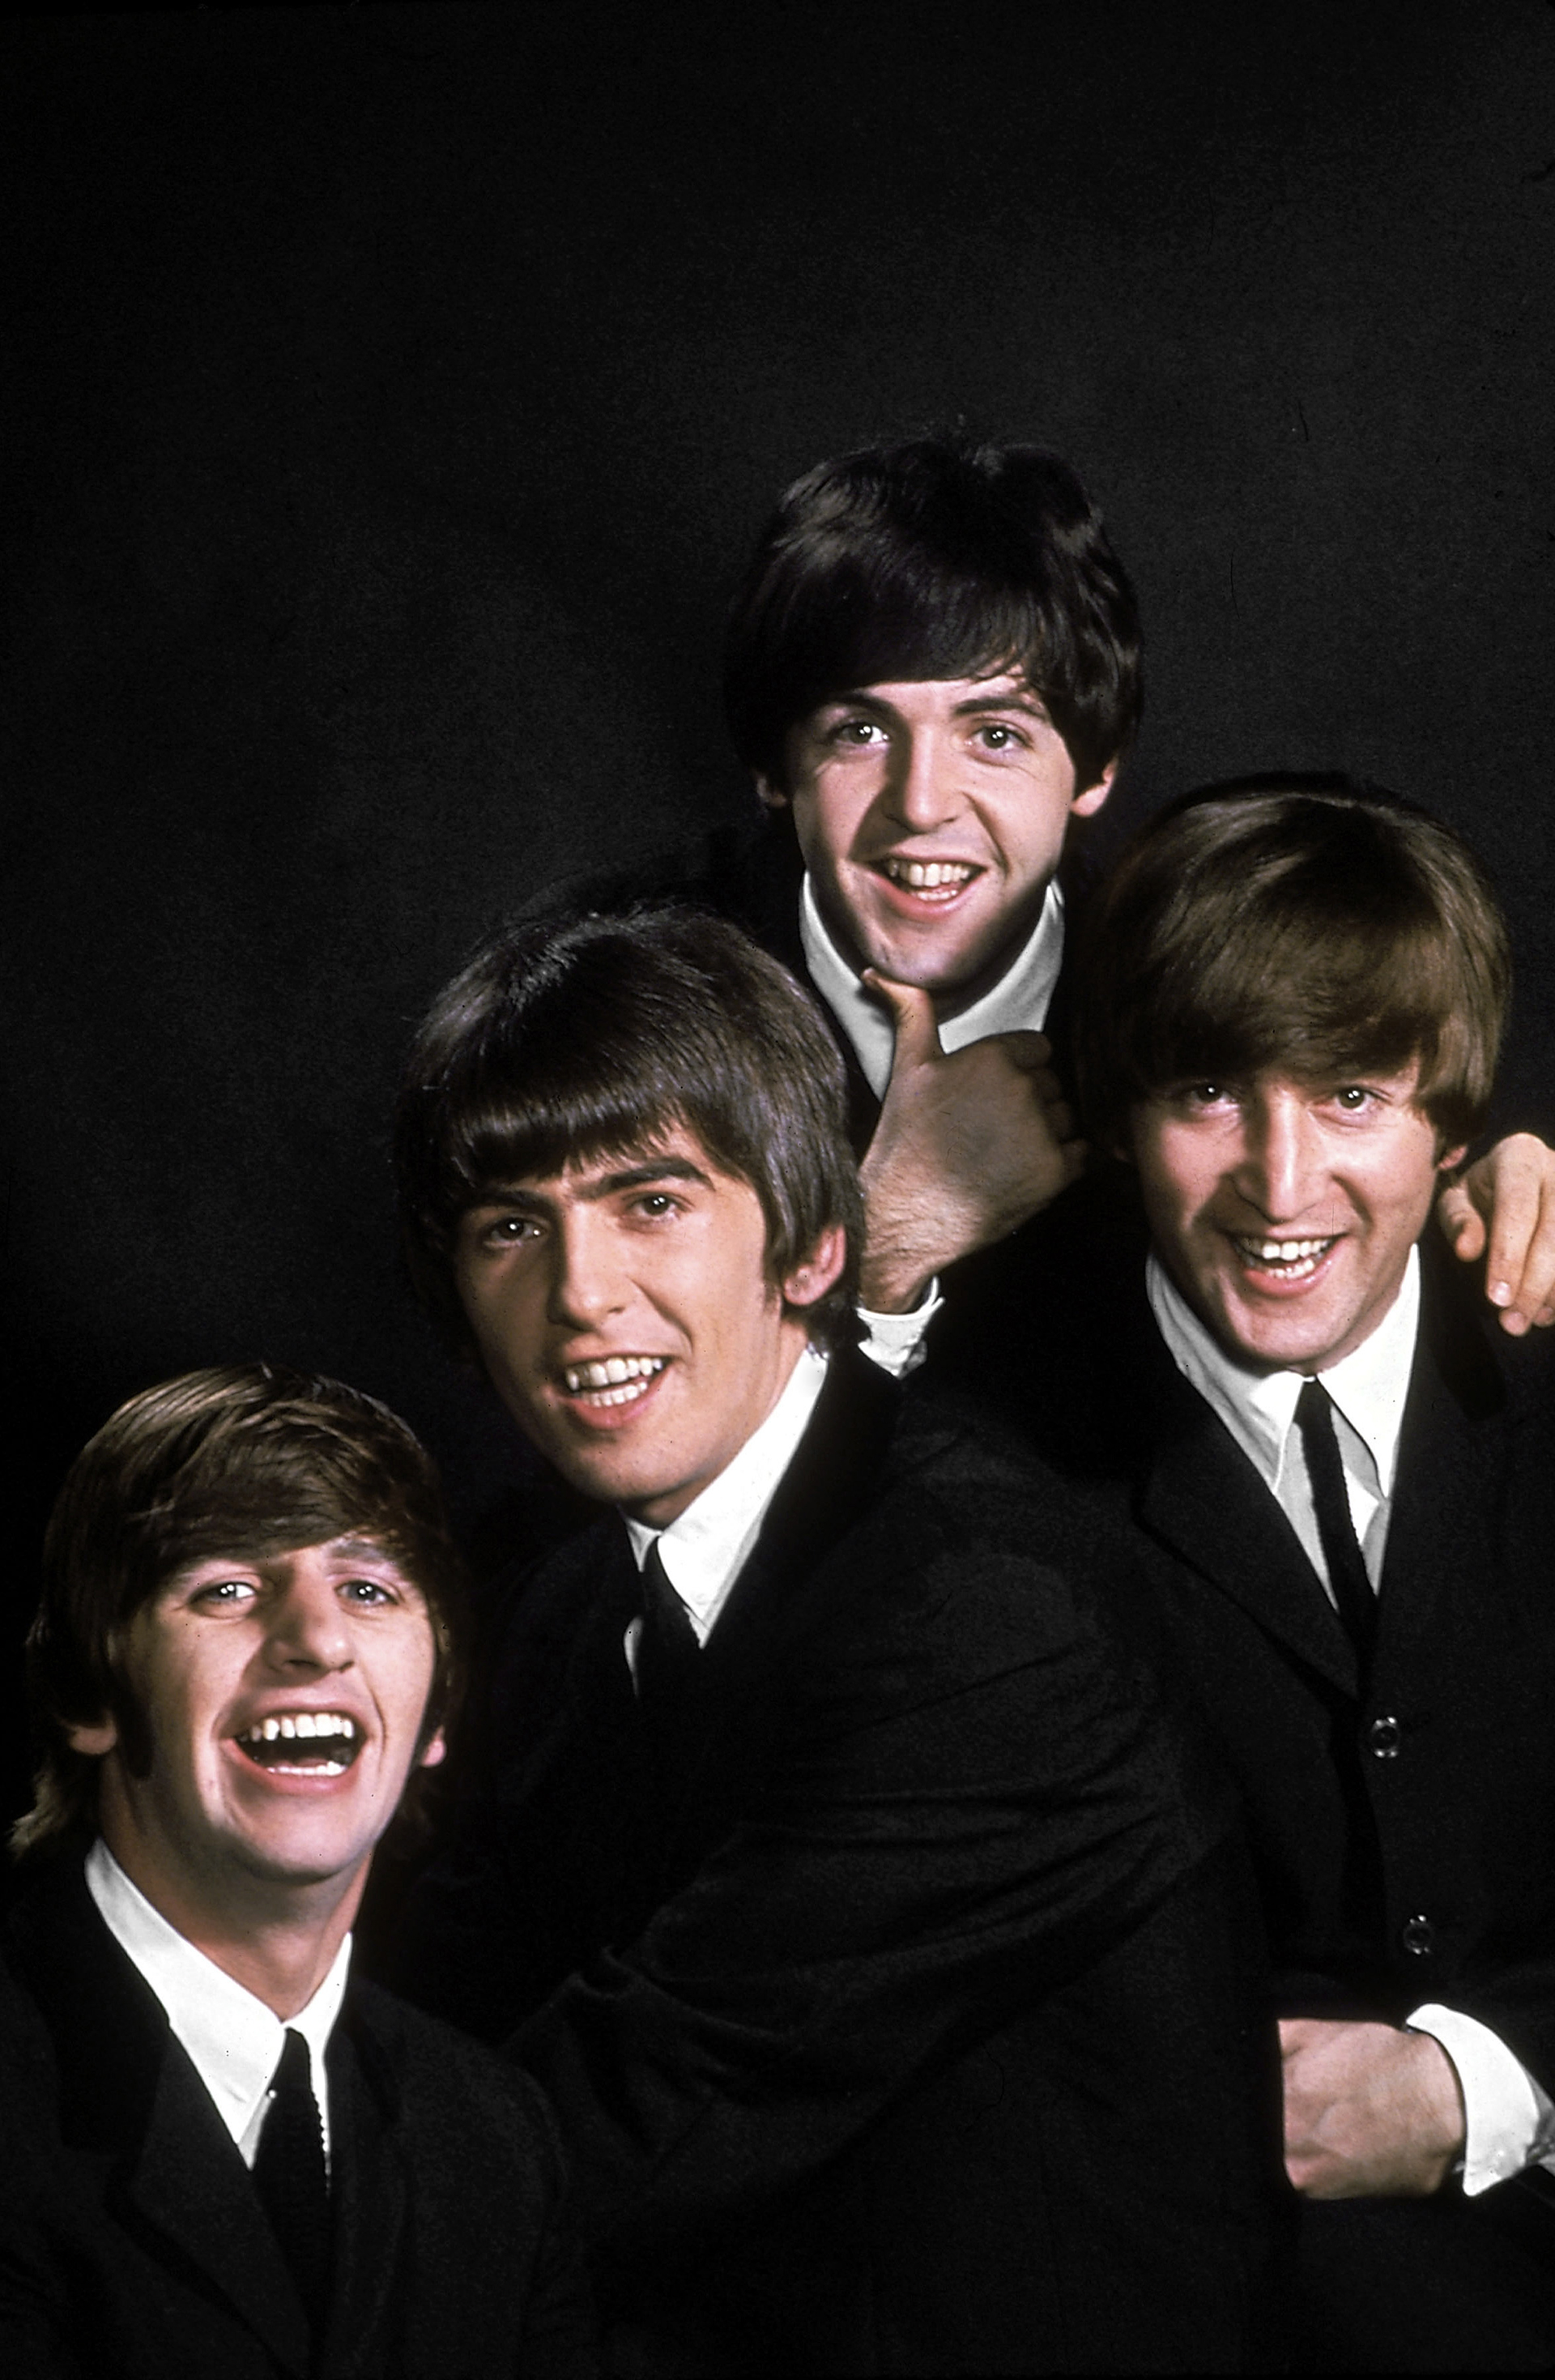 John Lennon, Paul McCartney, George Harrison y Ringo Starr. (John Dominis/The LIFE Picture Collection/Getty Images)